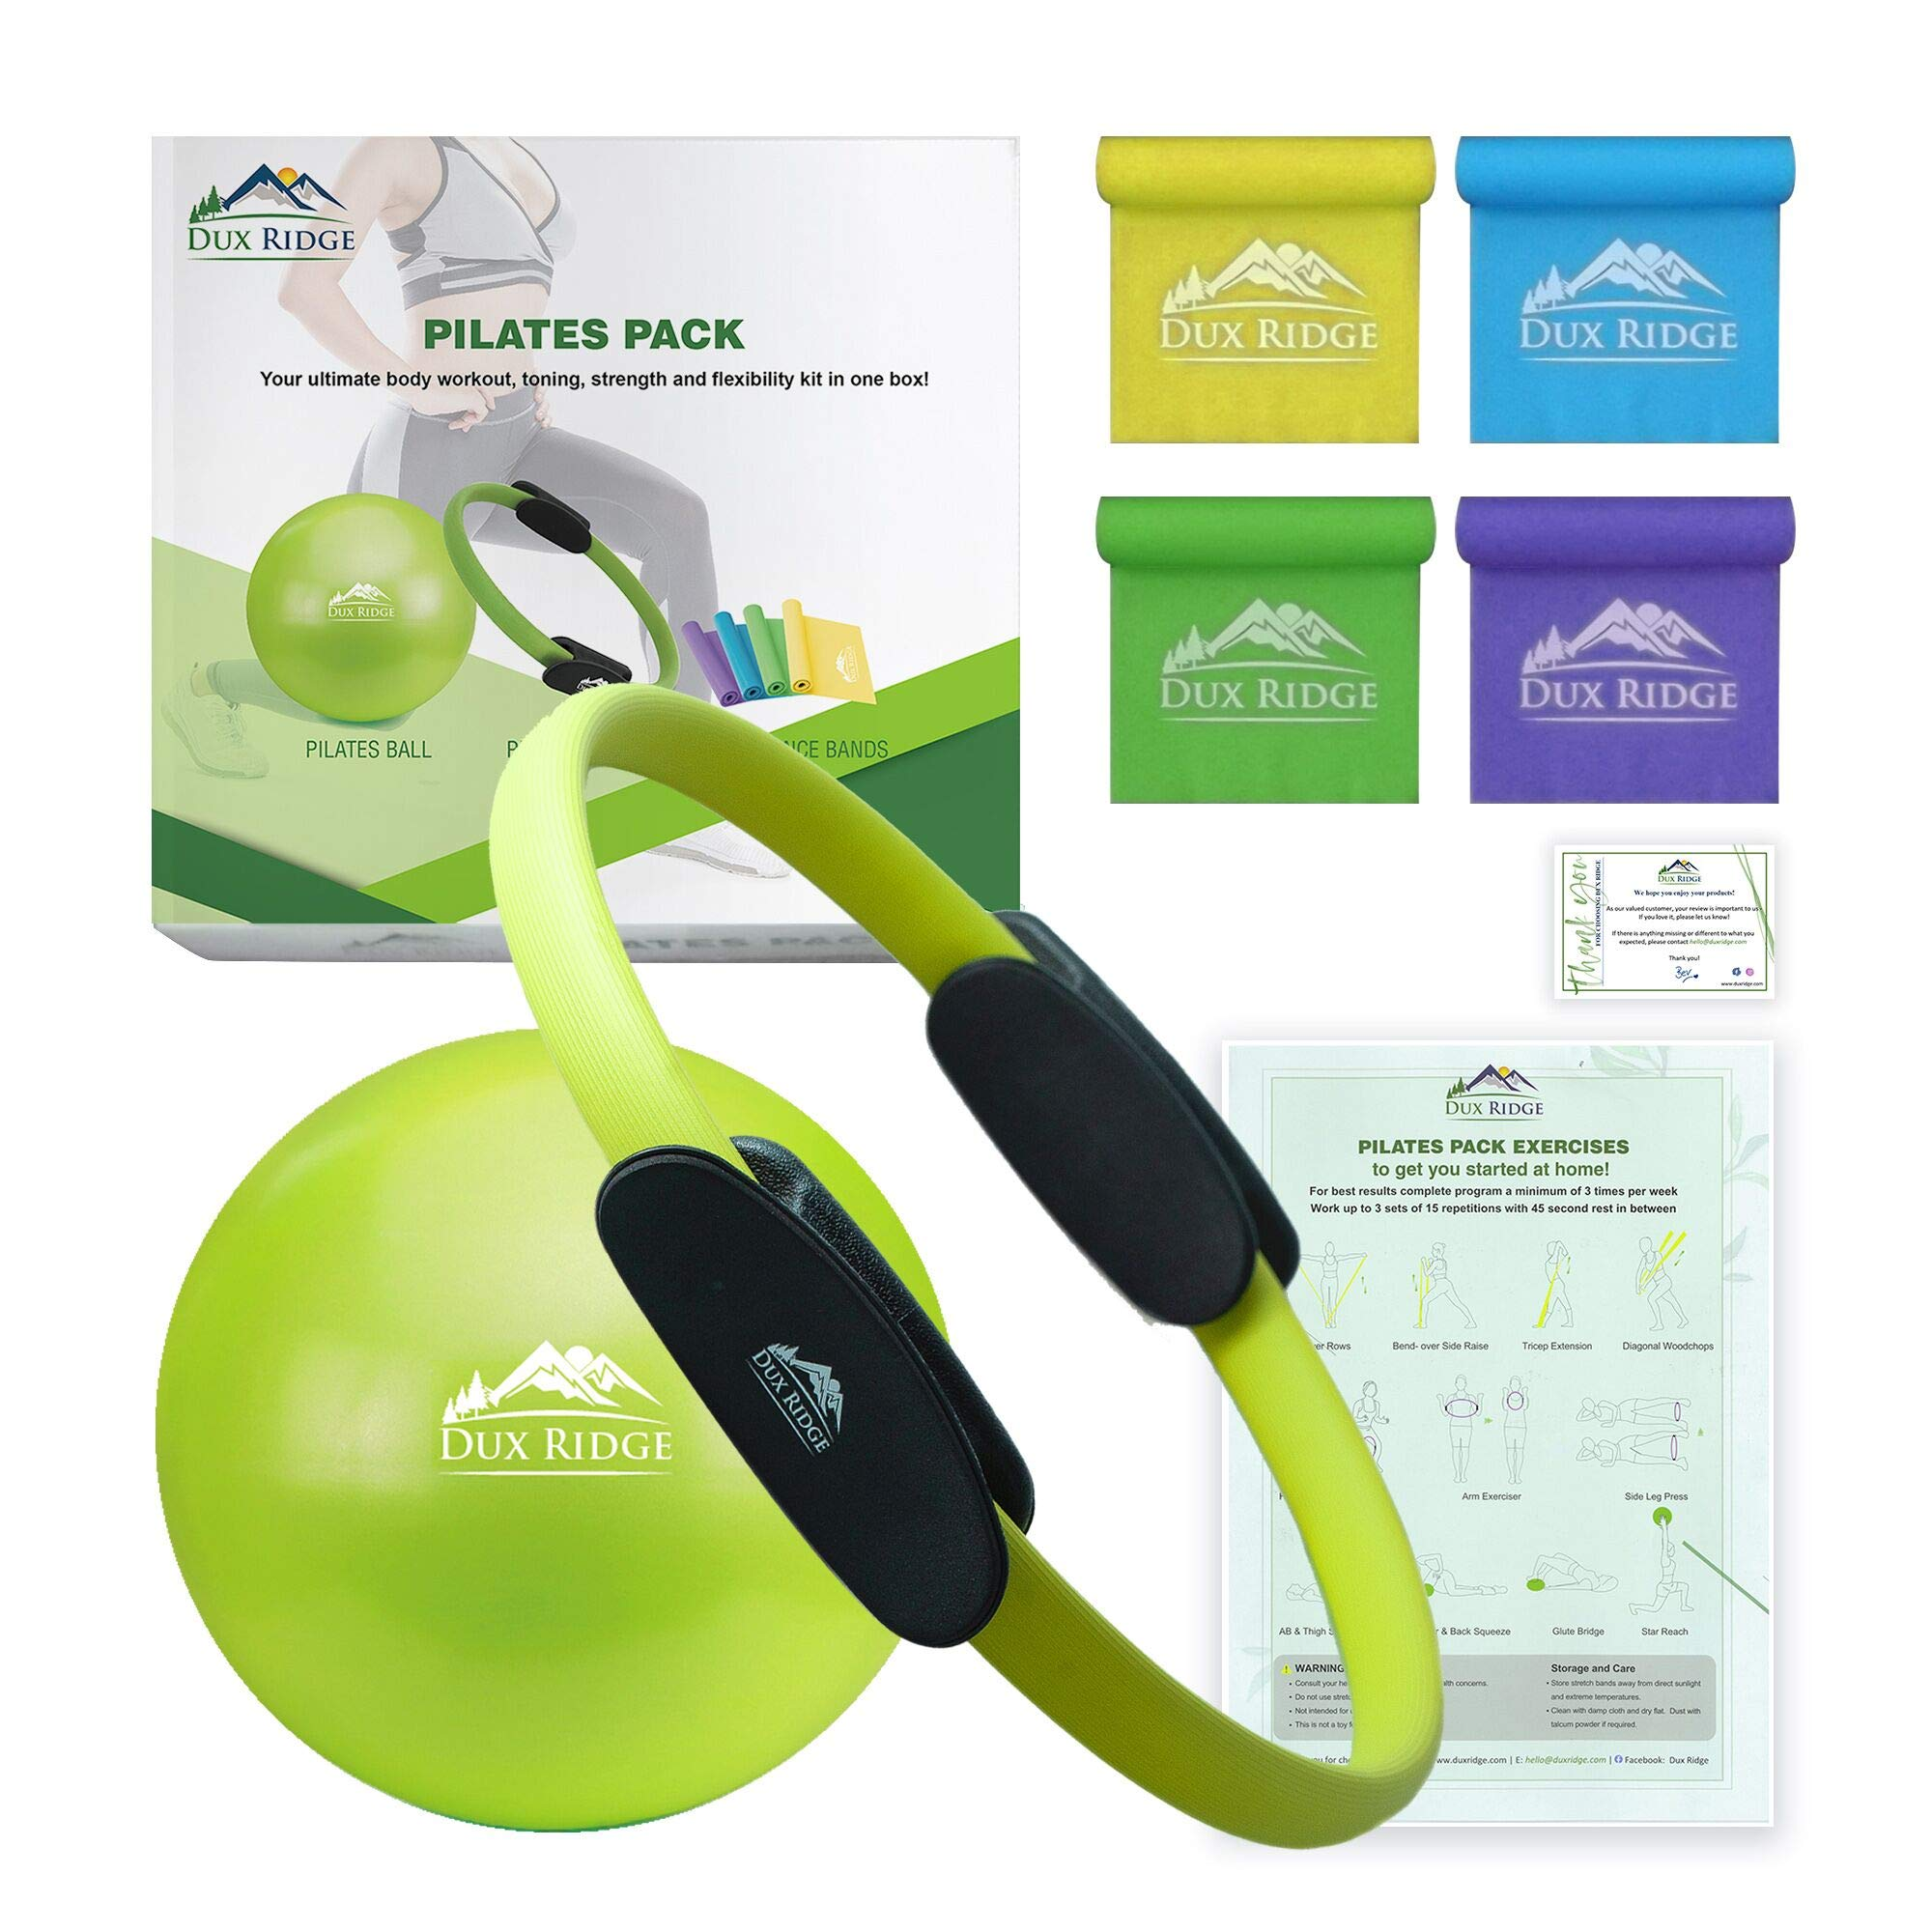 Dux Ridge Pilates Ring 12″ Magic Circle, 9″ Pilates Mini Ball, Set of 4 Resistance Bands. Total Body Workout in one Box! Pilates Yoga Barre Physical Therapy. Strength Training Without Weights.